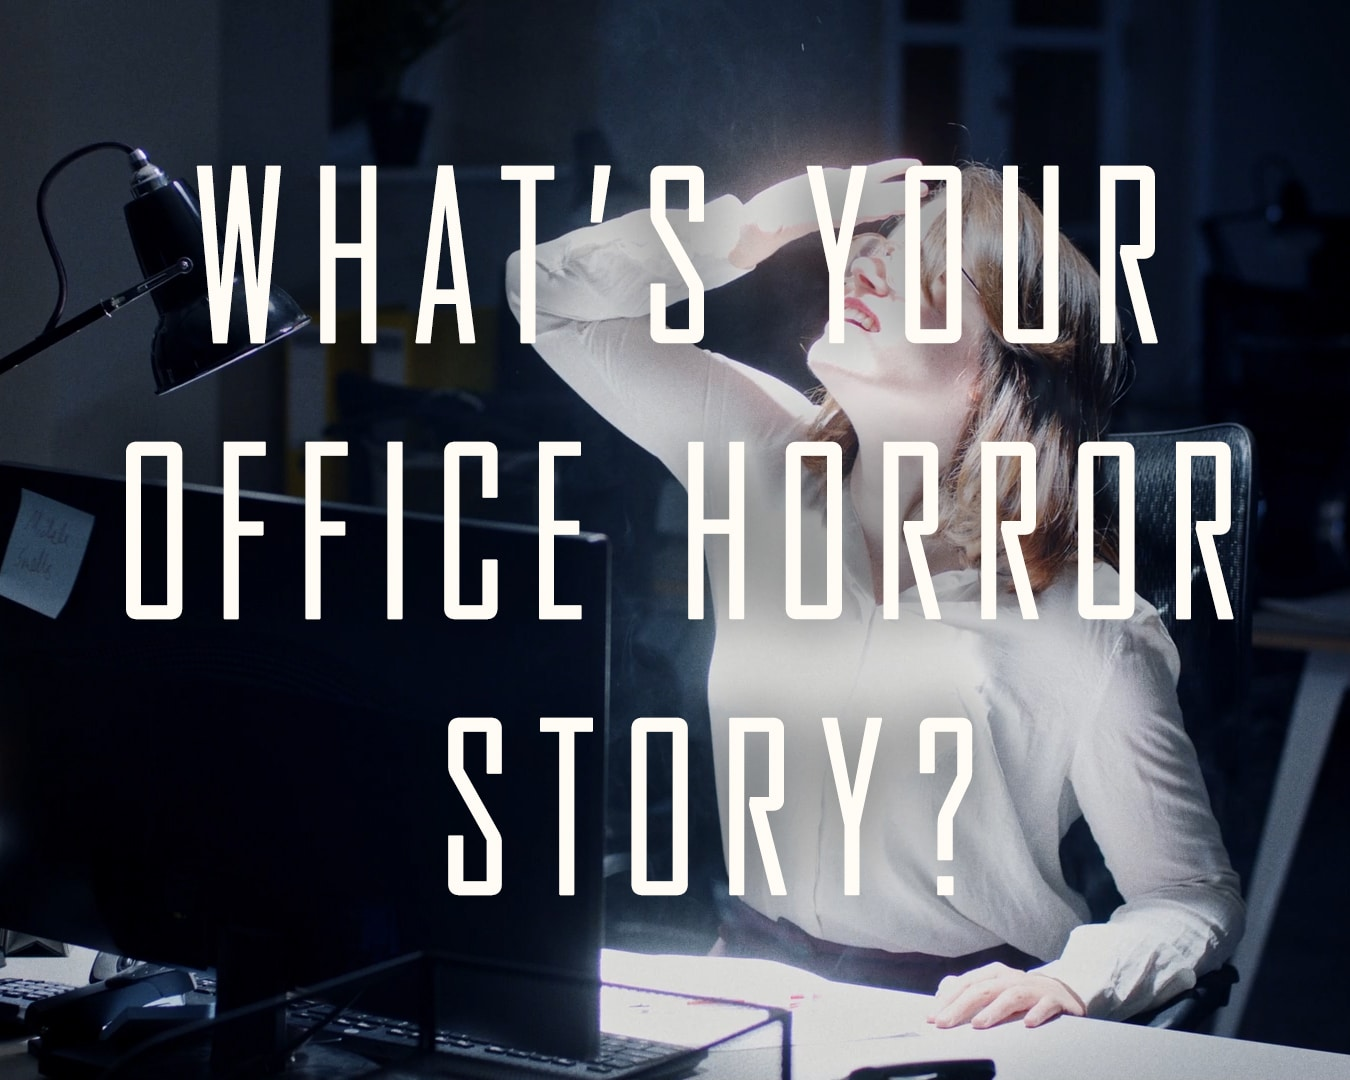 #Halkinween video - Better lit offices make for a happier workforce